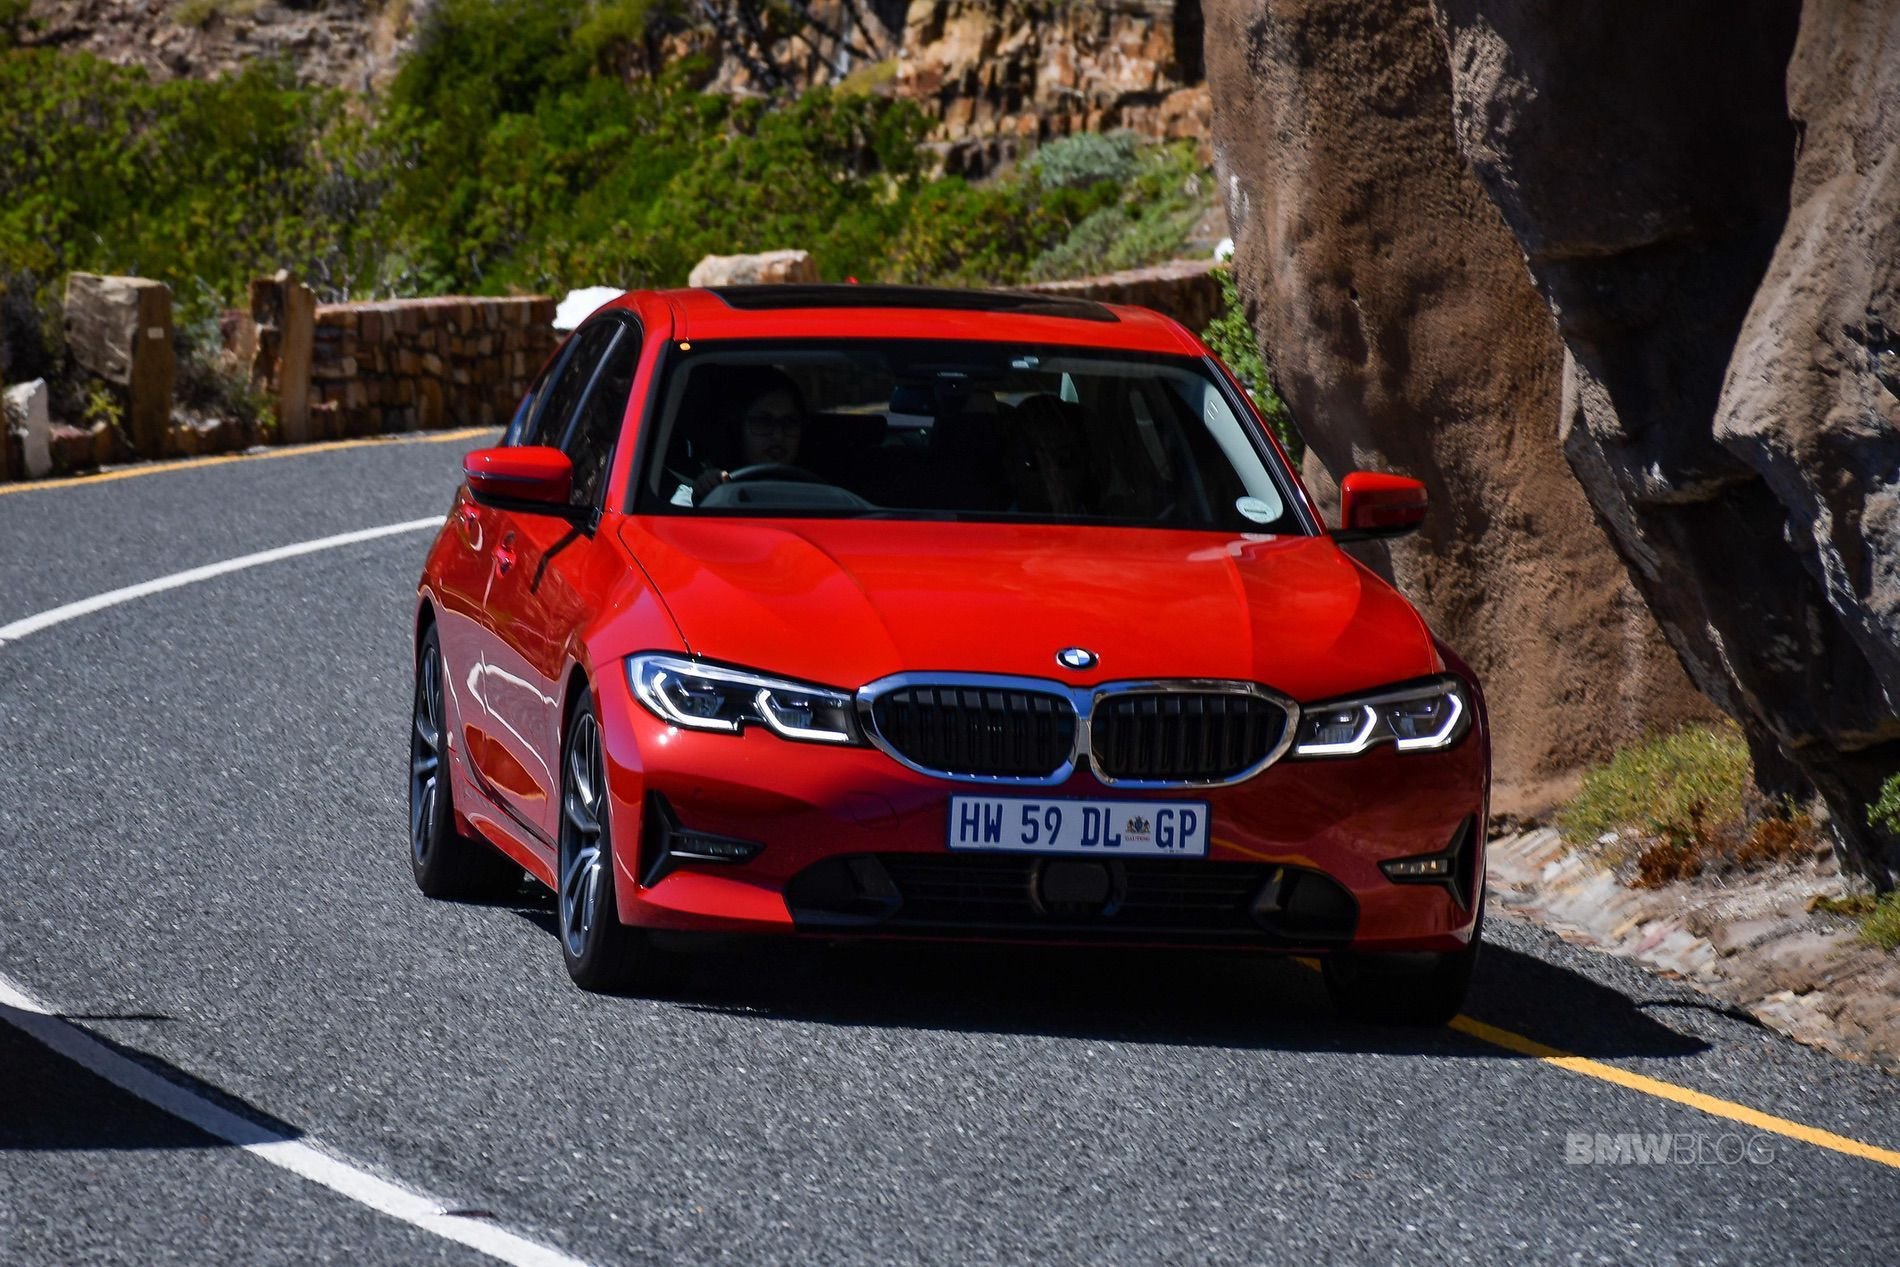 Bmw G20 3 Series In Melbourne Red With Sport Line Package